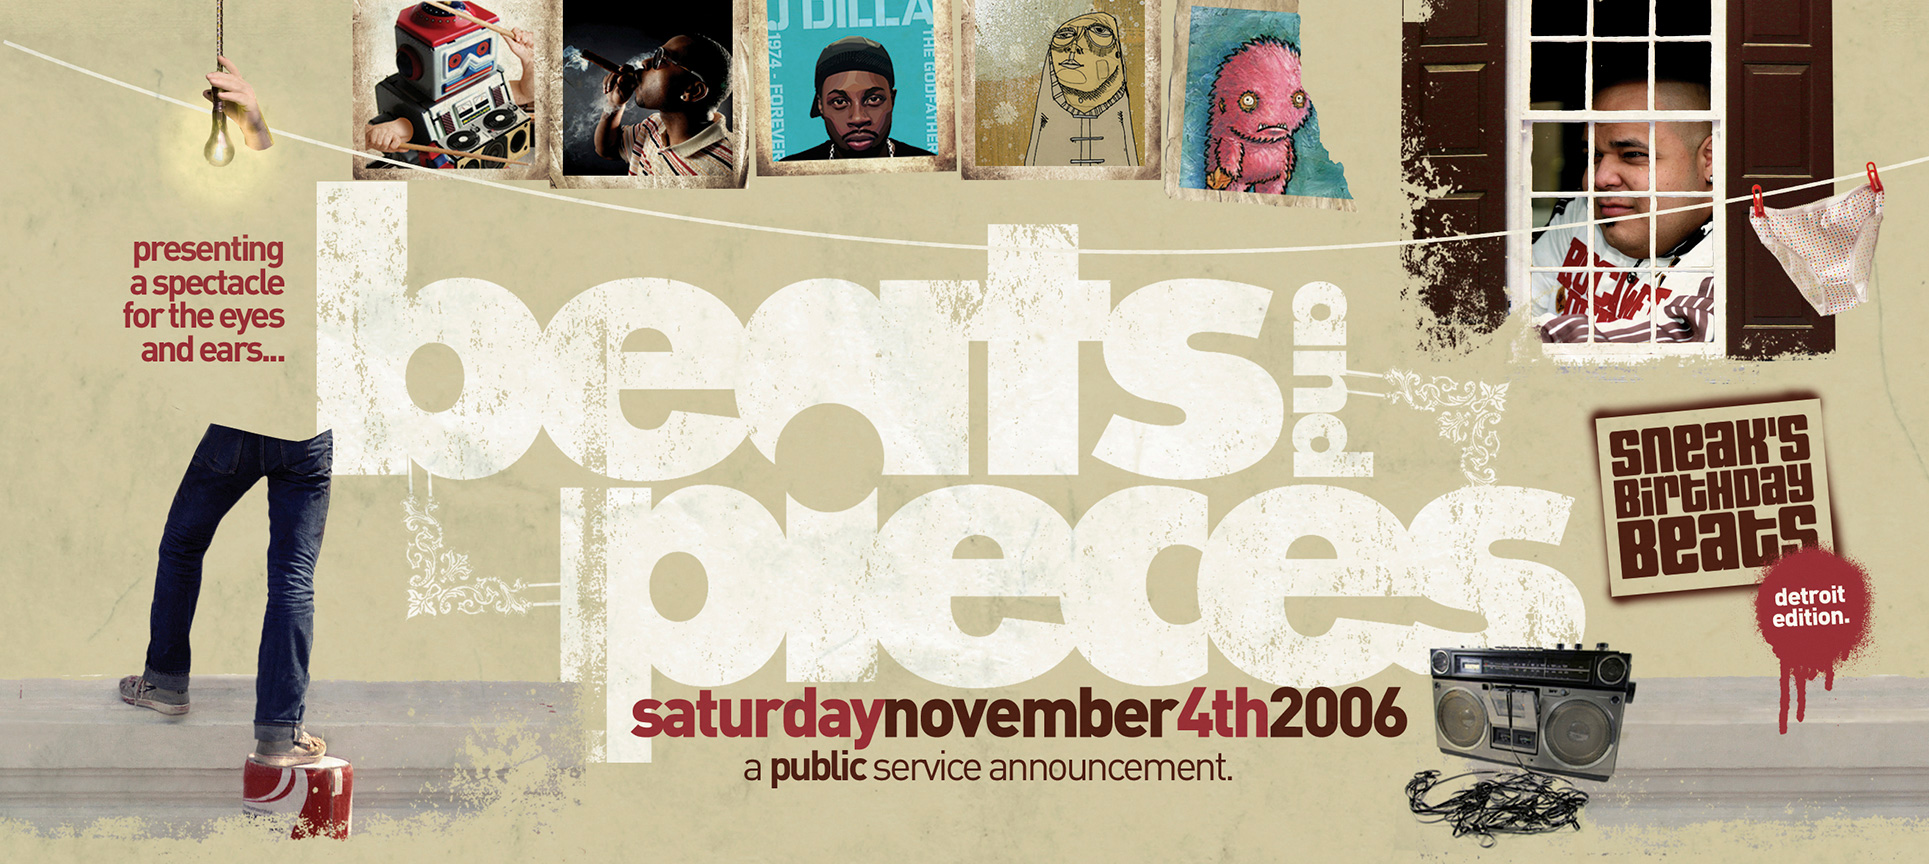 beatsandpieces